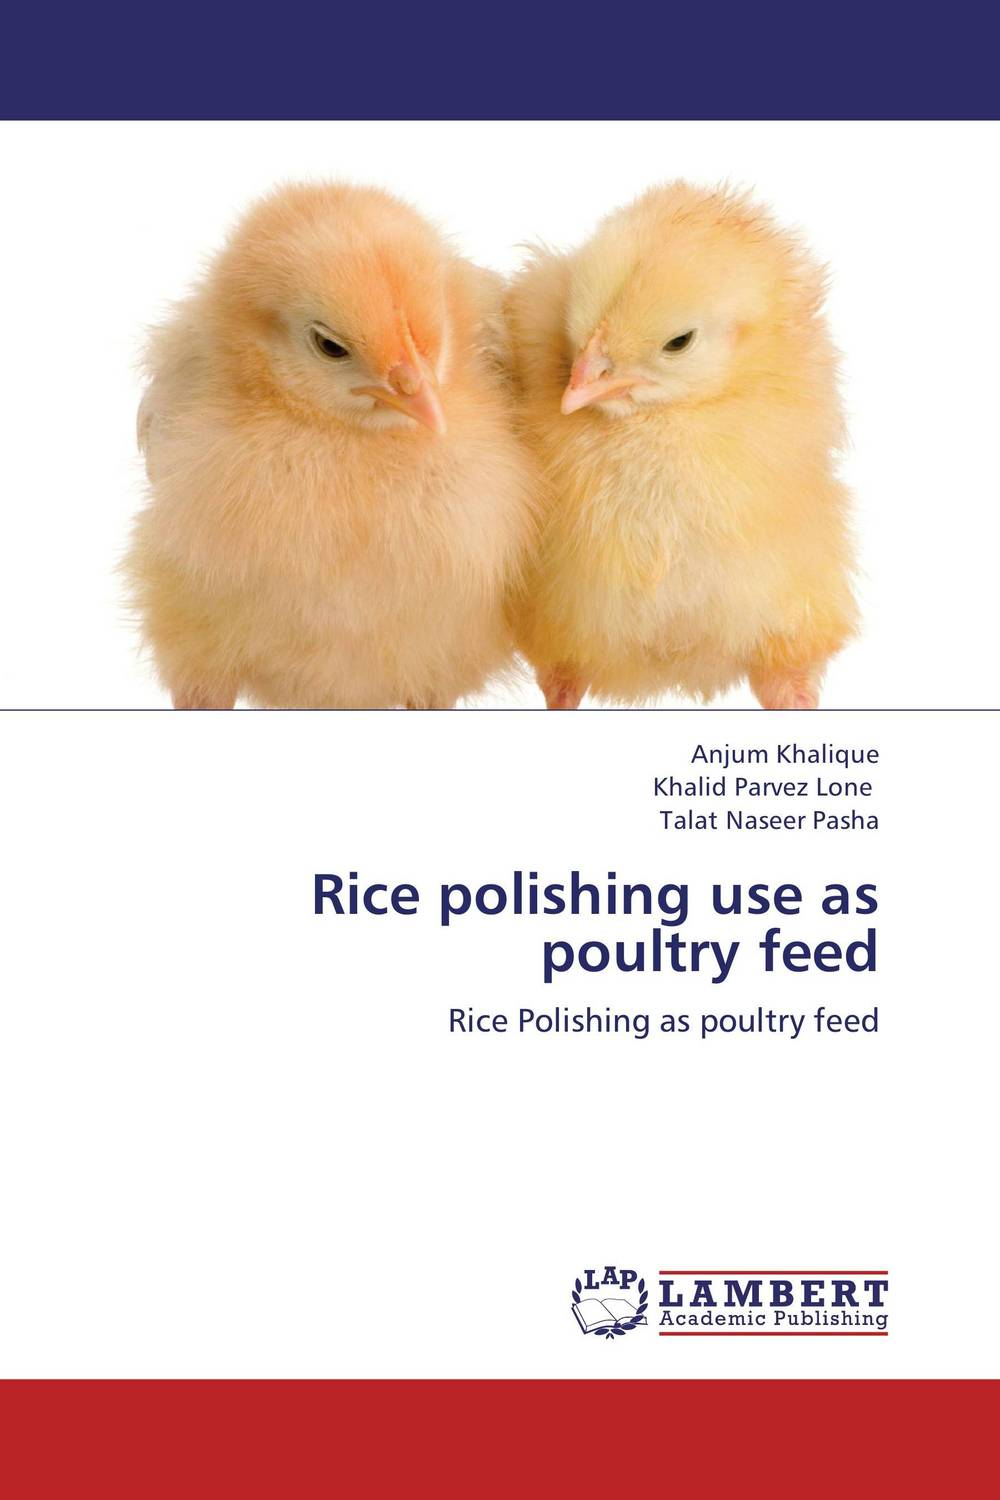 Rice polishing use as poultry feed 1pc white or green polishing paste wax polishing compounds for high lustre finishing on steels hard metals durale quality